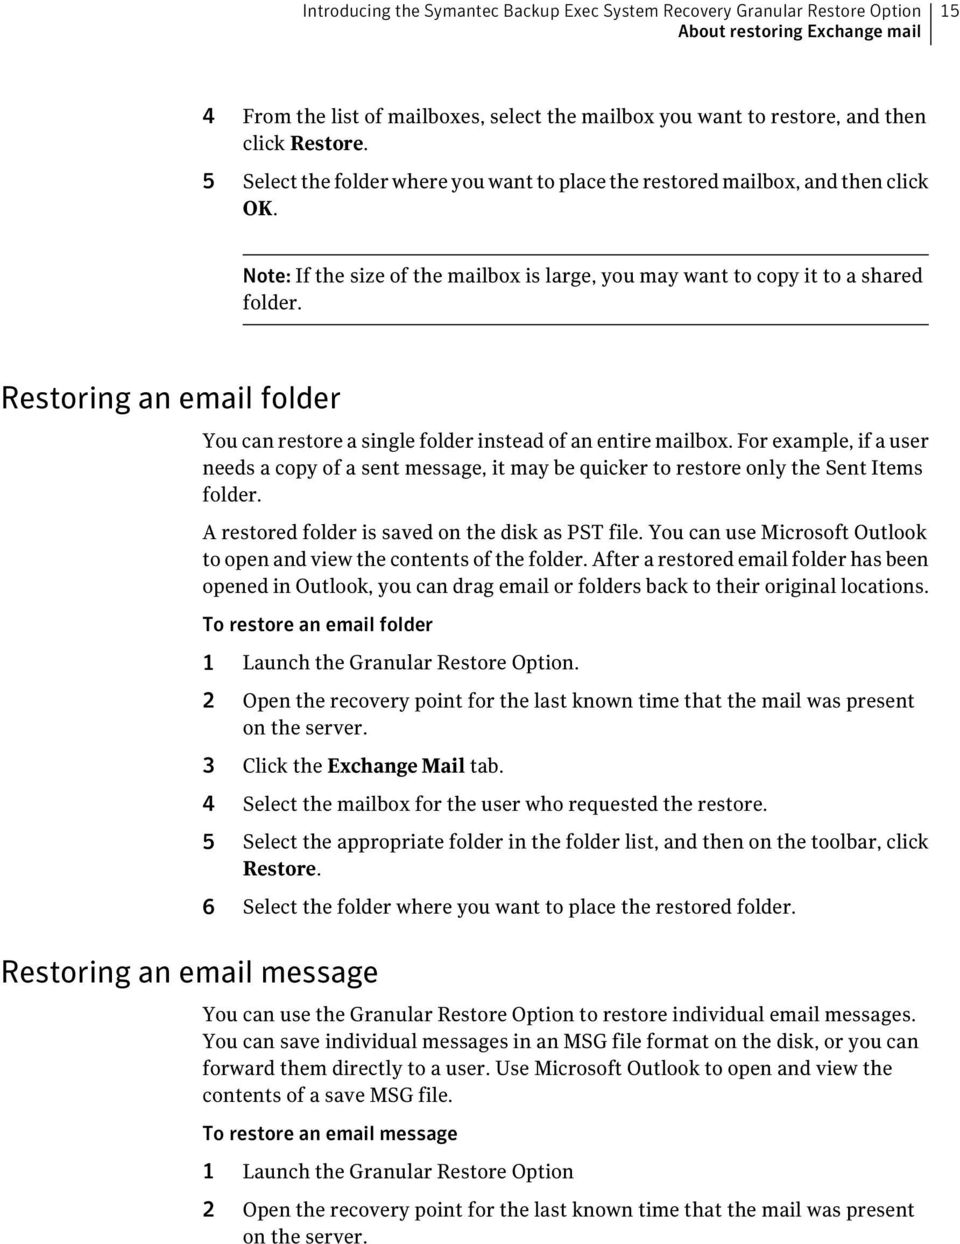 Restoring an email folder You can restore a single folder instead of an entire mailbox. For example, if a user needs a copy of a sent message, it may be quicker to restore only the Sent Items folder.